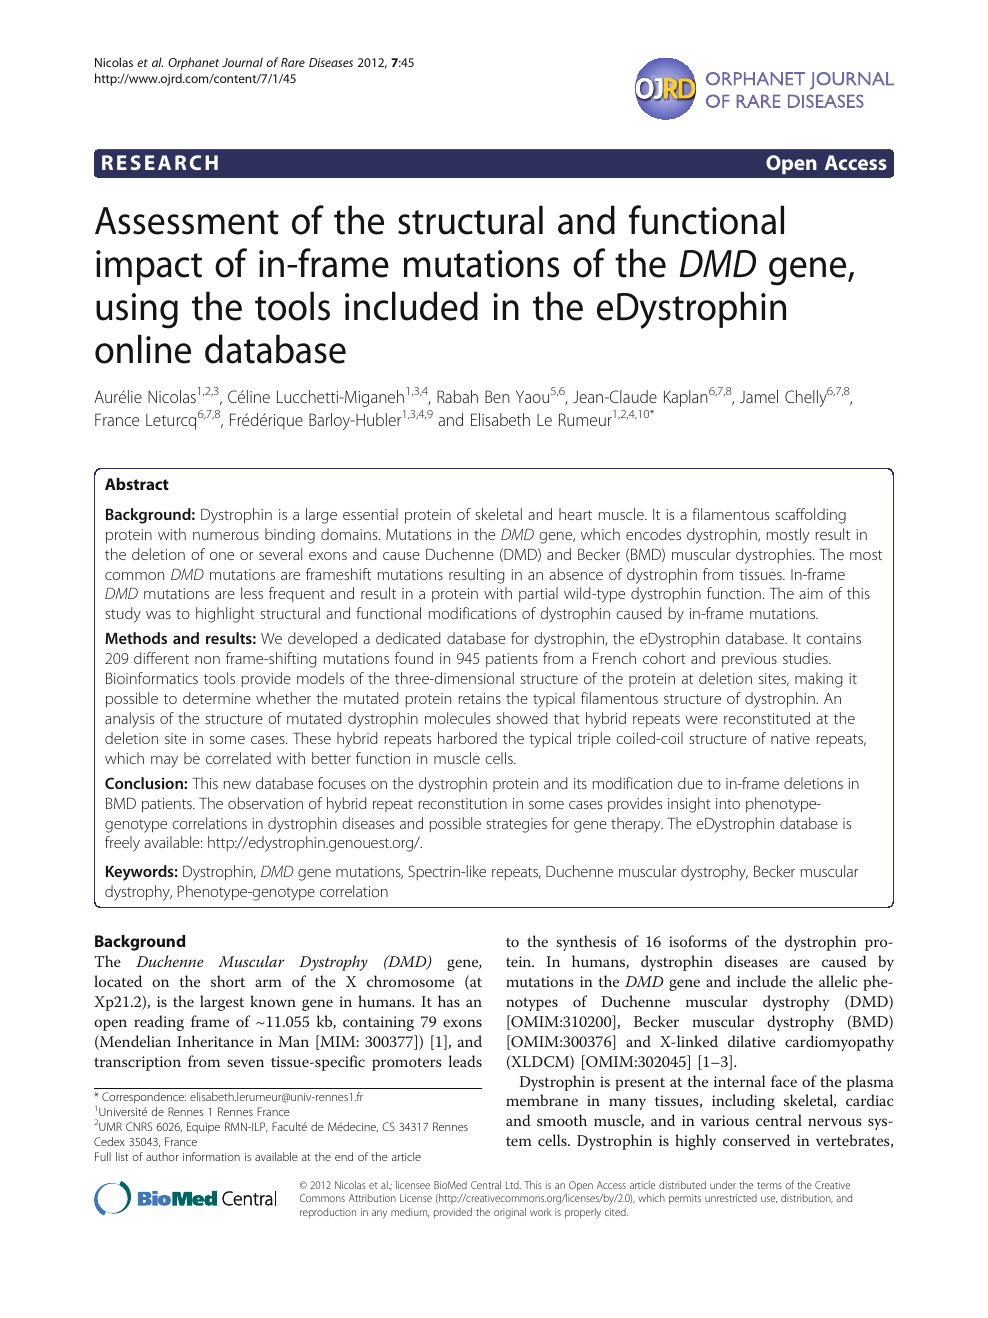 Assessment of the structural and functional impact of in